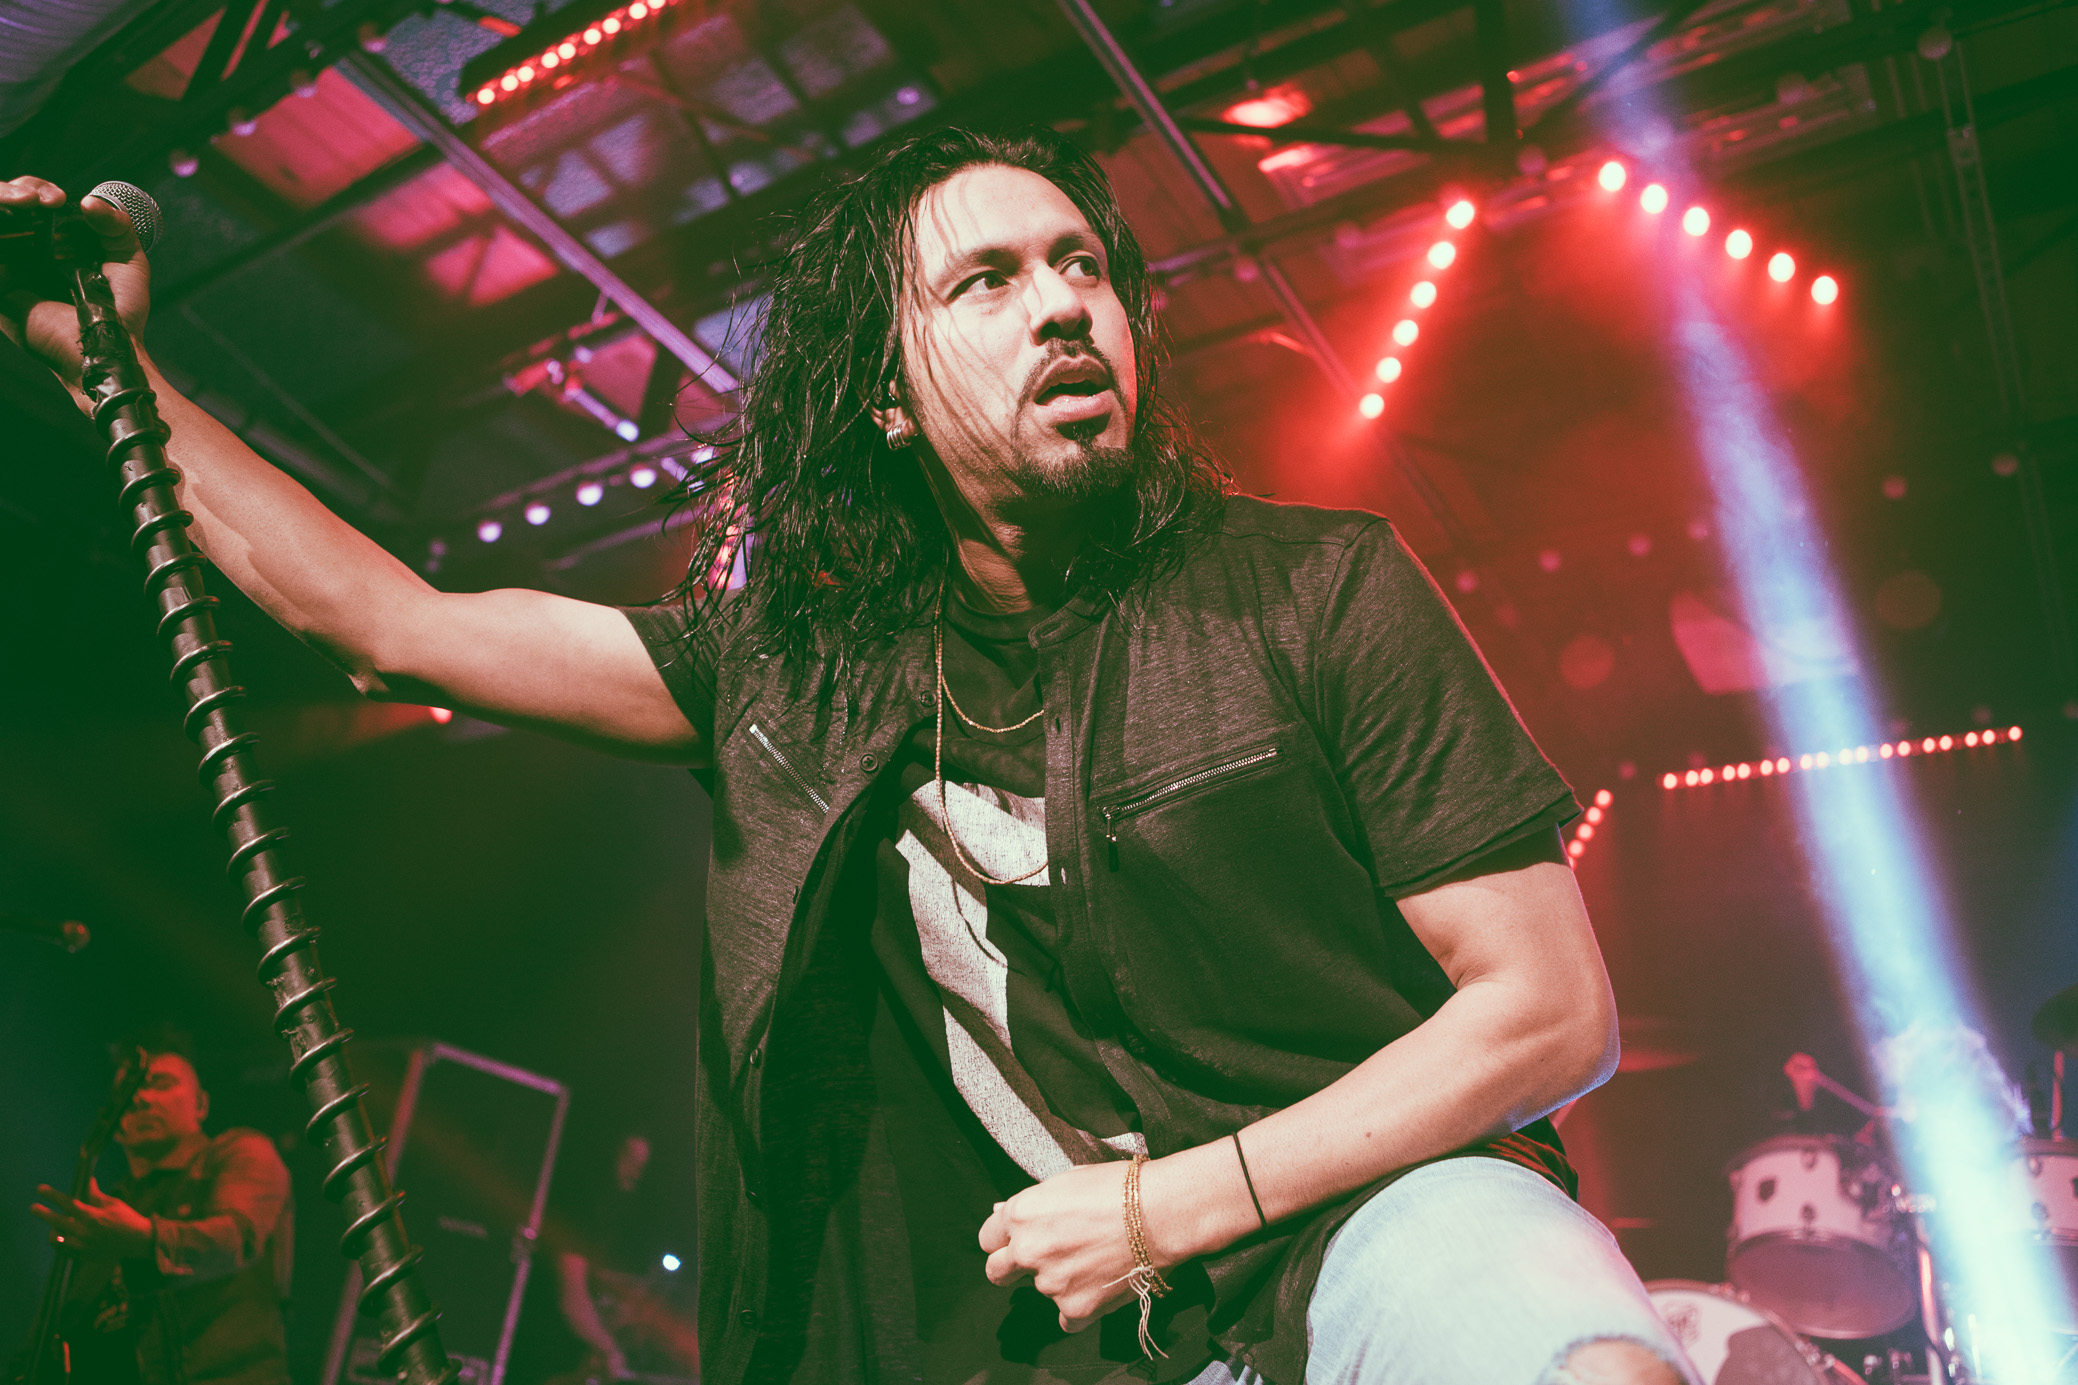 Leigh Kakaty of Pop Evil performs in concert at Saturn Birmingham in Birmingham, Alabama on March 13th, 2018. (Photo by David A. Smith/DSmithScenes)